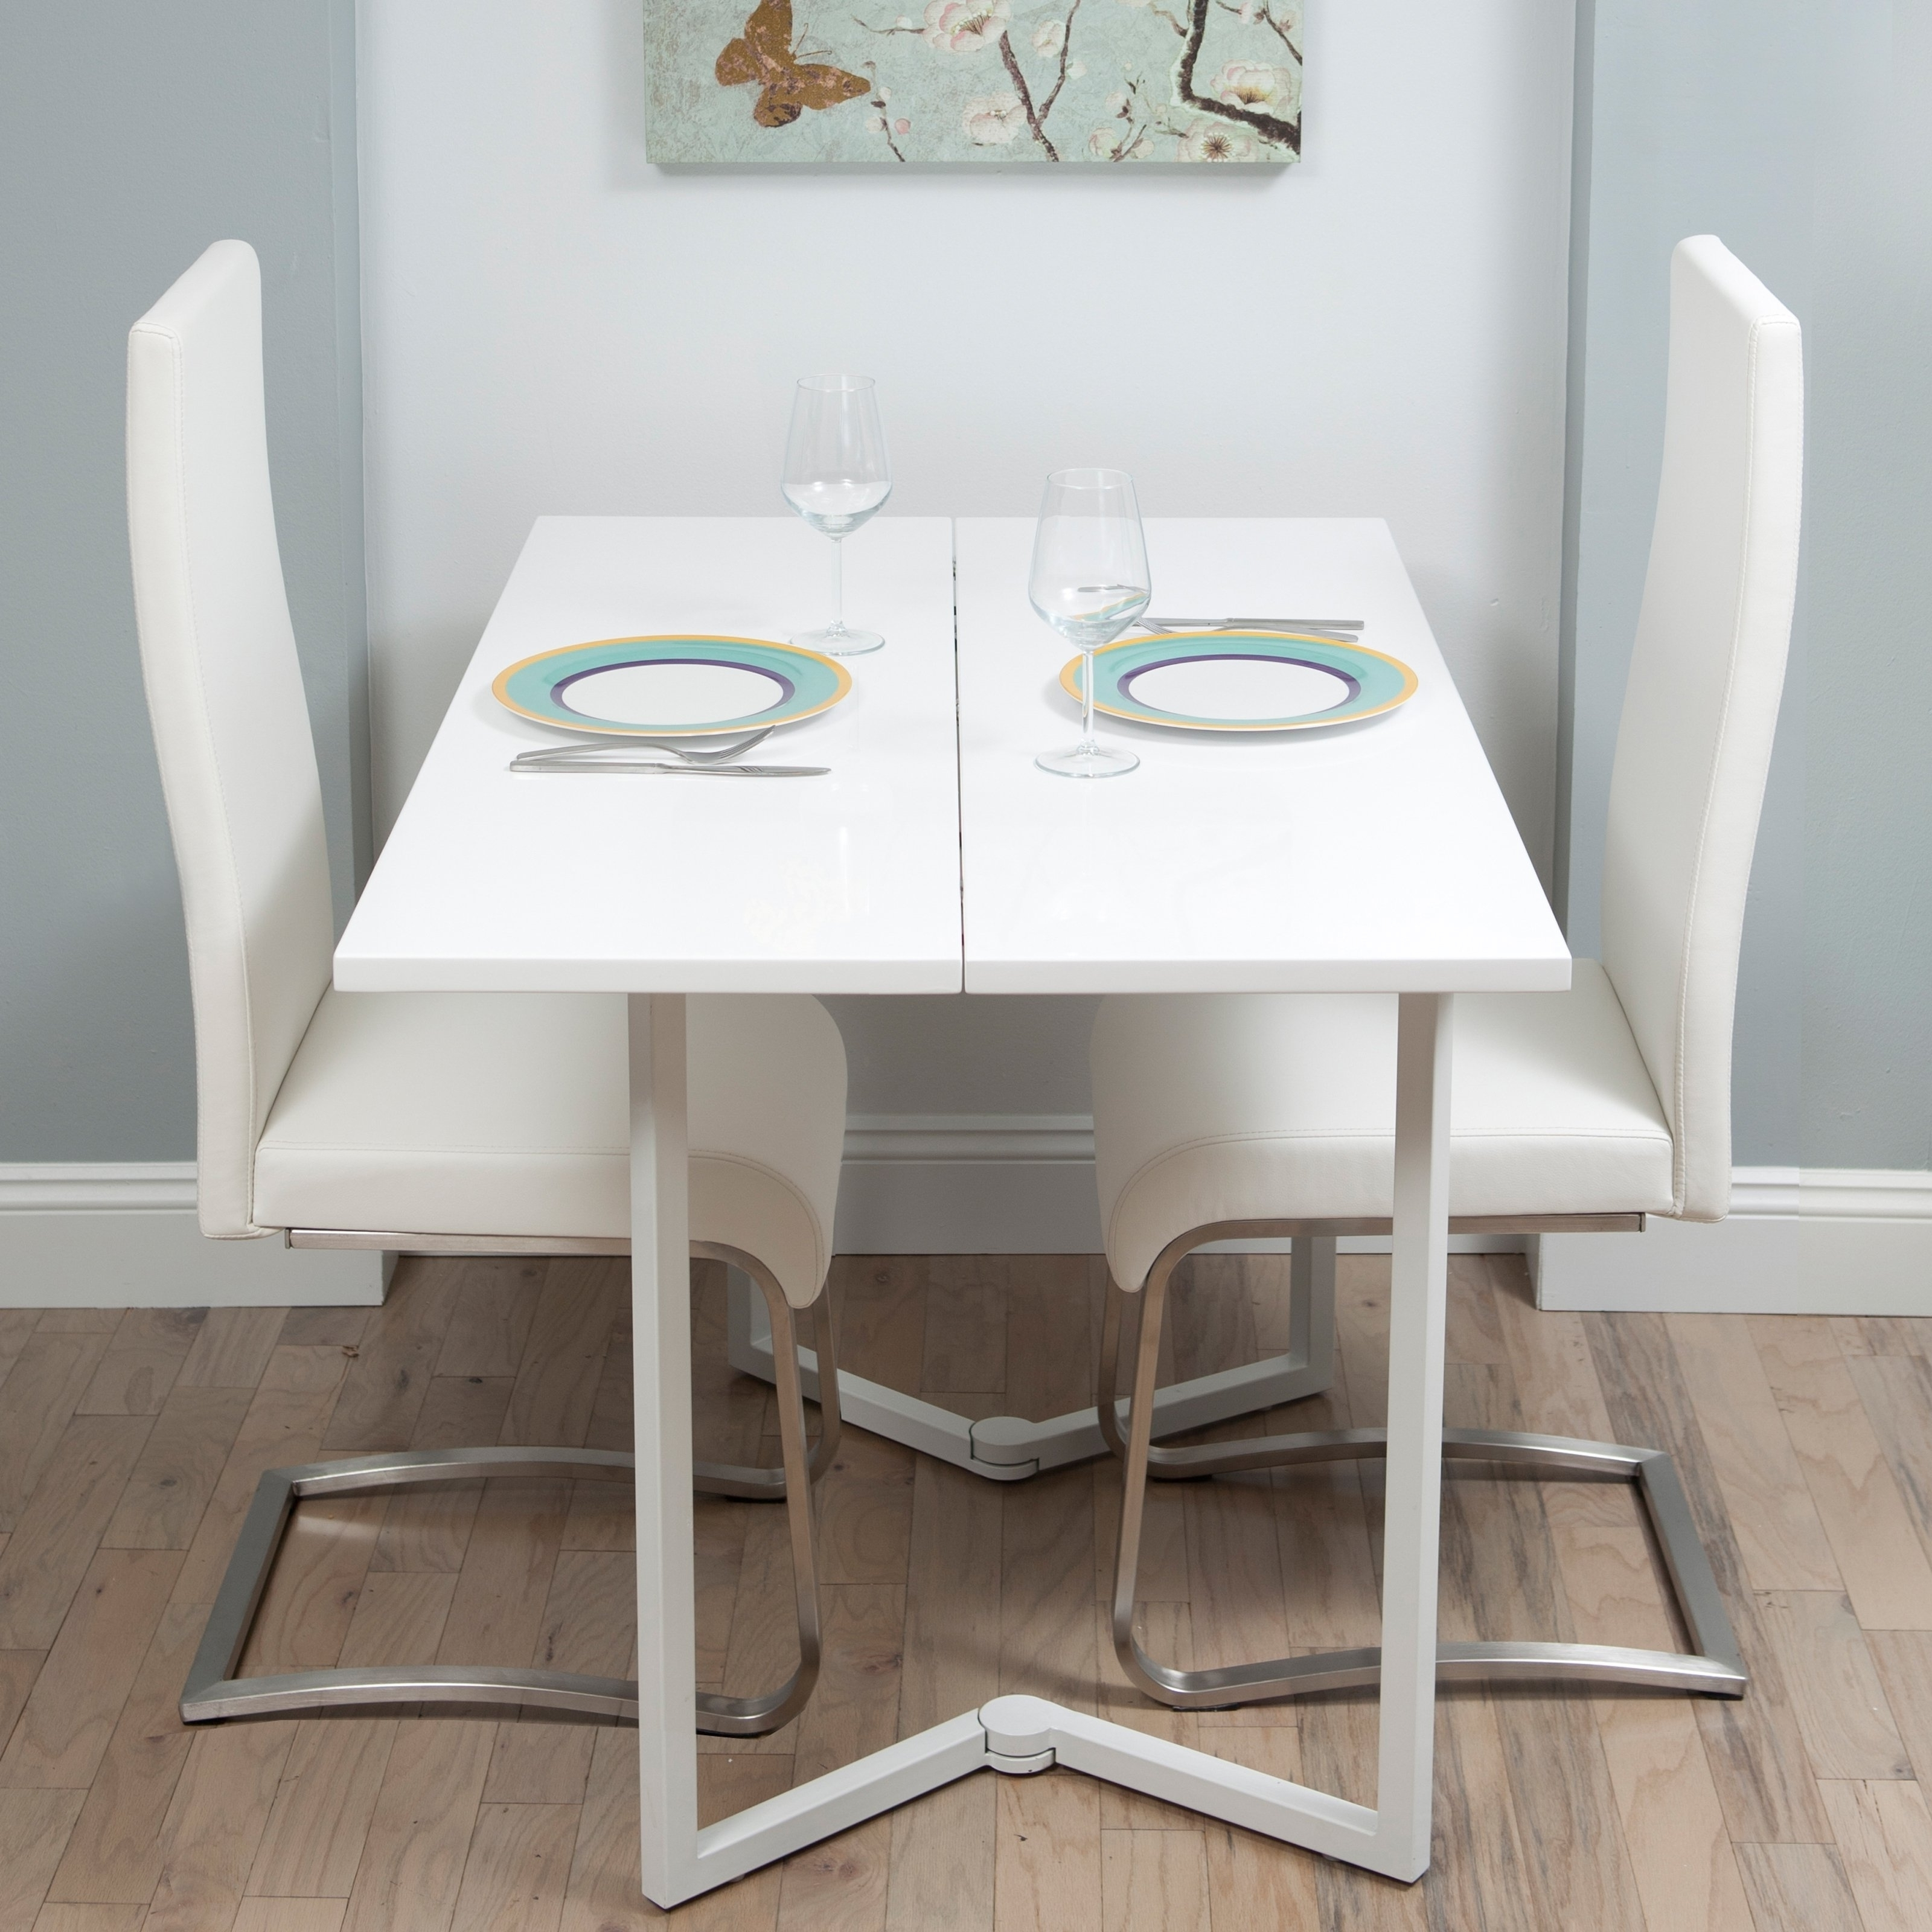 Foldable Dining Table For Saving Precious Space At Homes – Furniture Intended For Newest Foldaway Dining Tables (View 11 of 25)